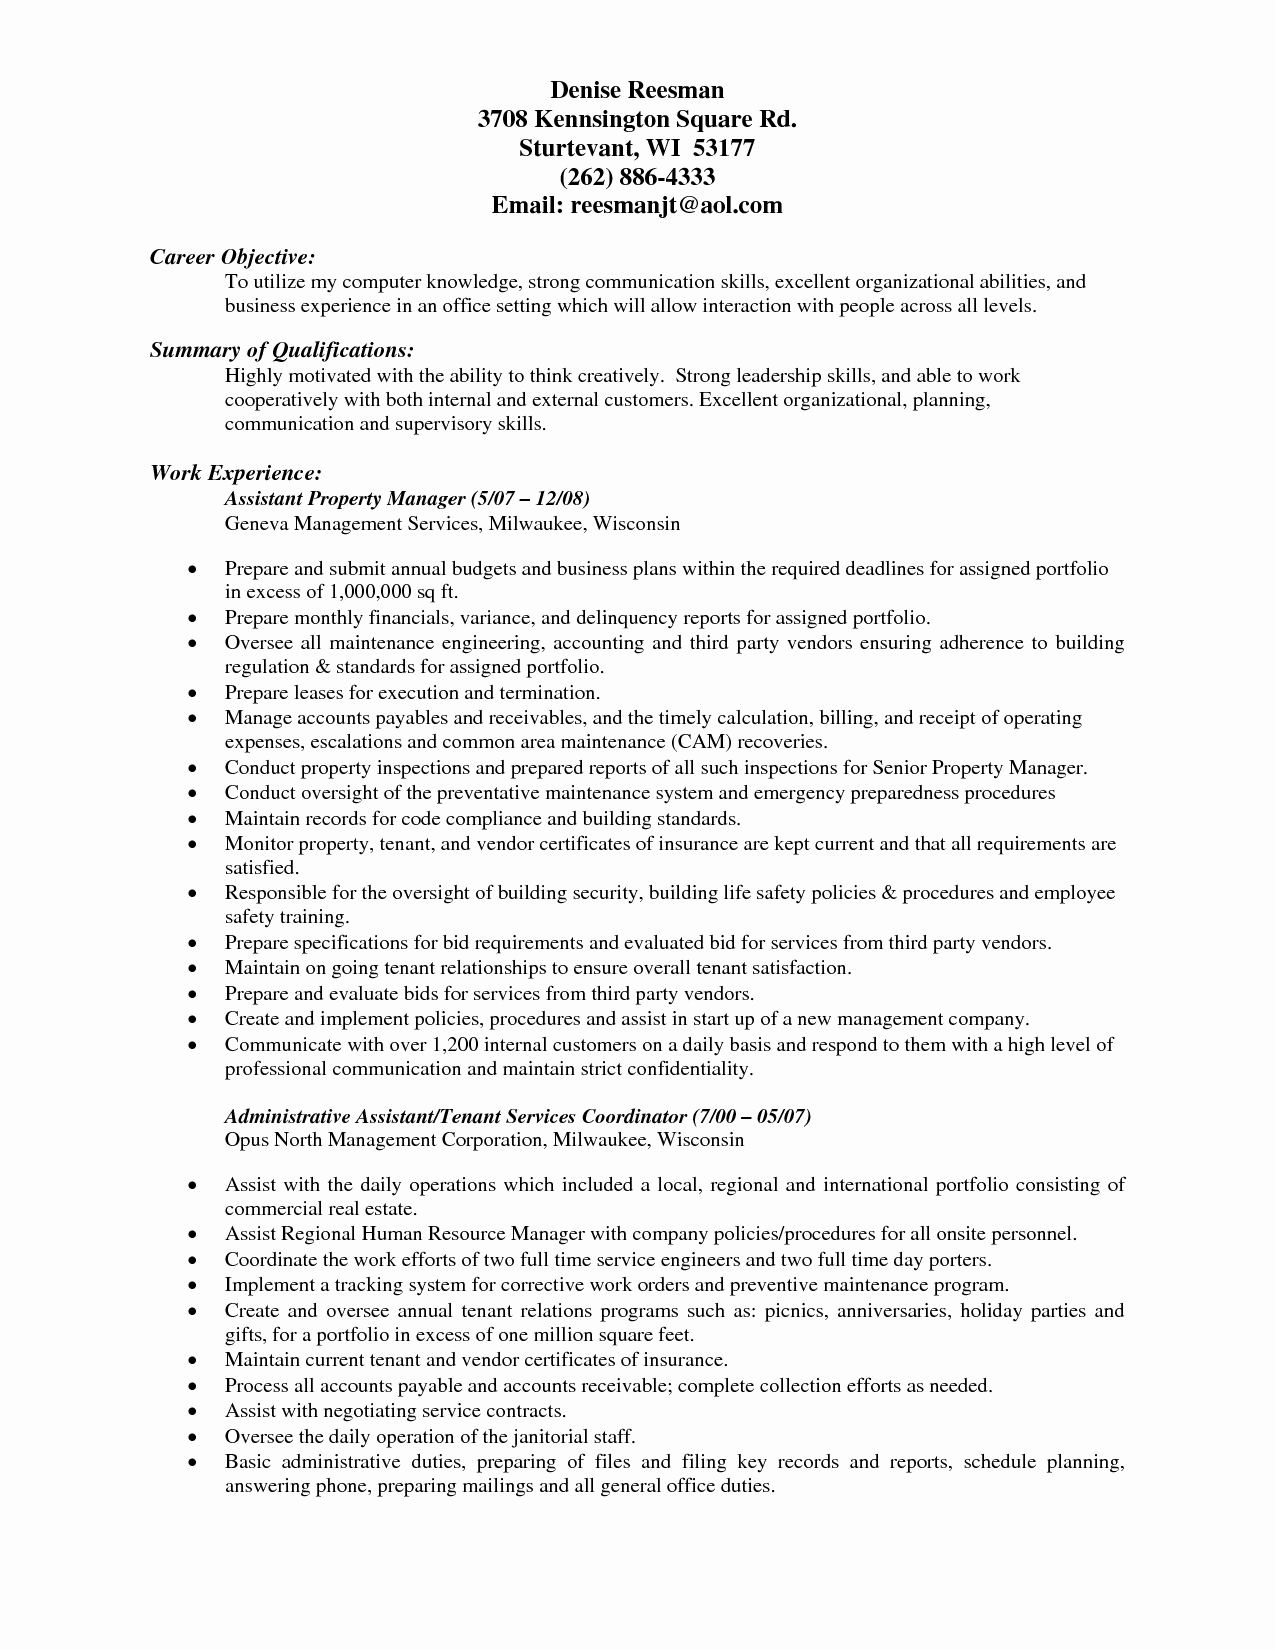 Assistant Property Manager Resume Fresh assistant Property Manager Resume